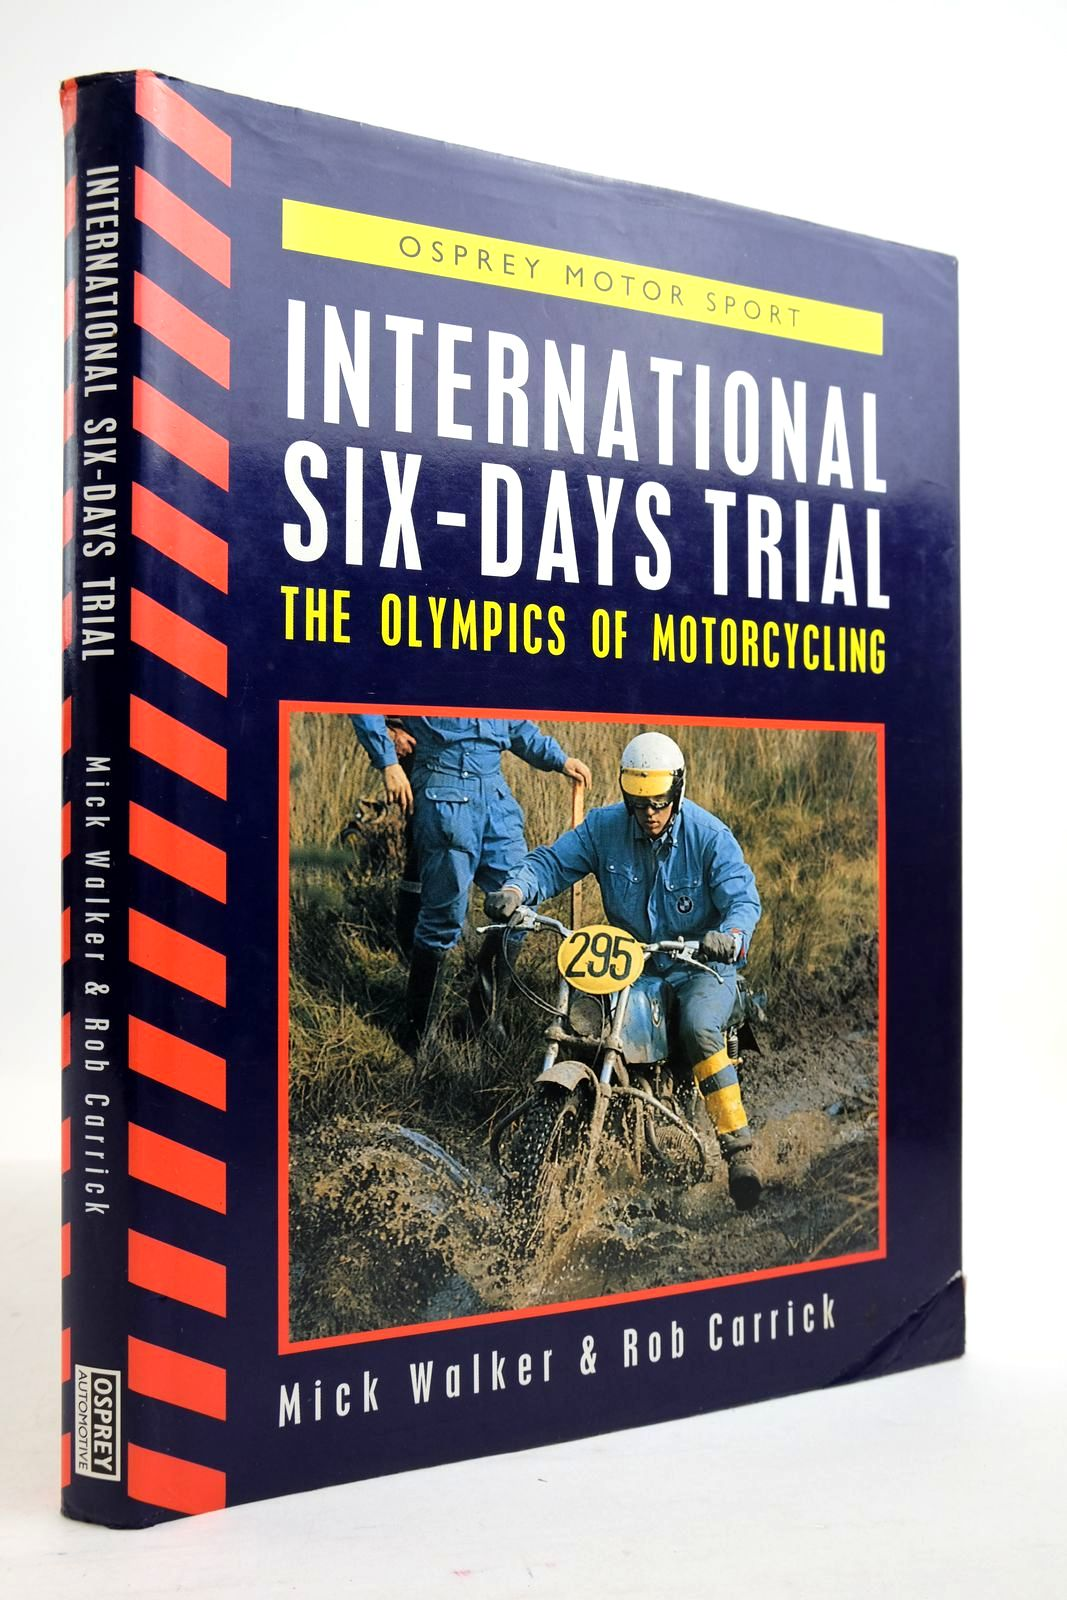 Photo of INTERNATIONAL SIX-DAYS' TRIAL: THE OLYMPICS OF MOTORCYCLING written by Walker, Mick Carrick, Rob published by Osprey Automotive (STOCK CODE: 2134894)  for sale by Stella & Rose's Books